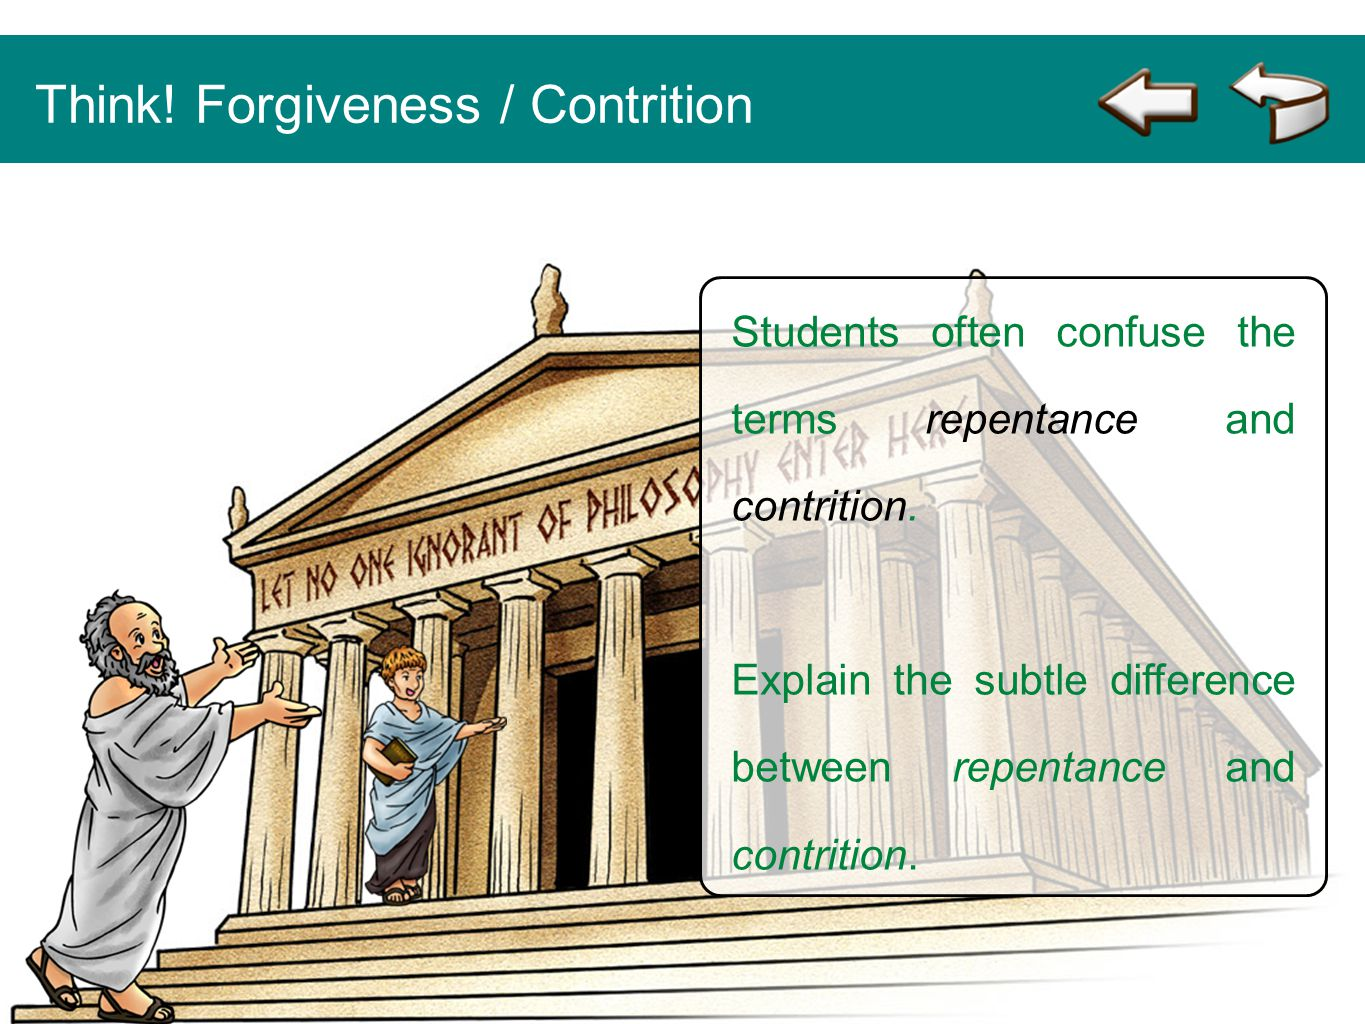 Think! Forgiveness / Contrition